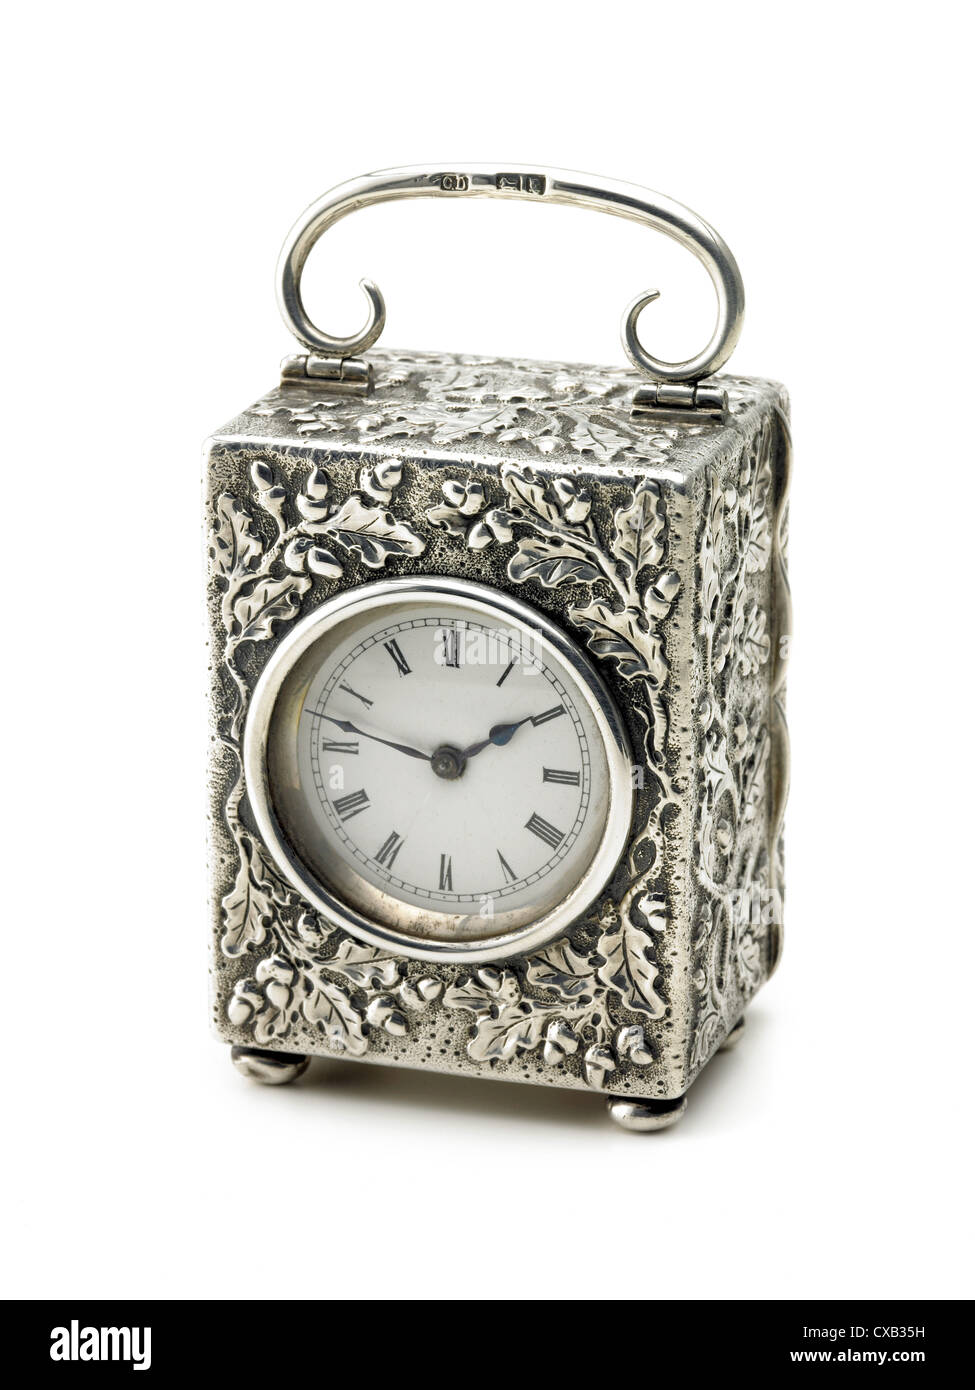 miniature, silver cased carriage clock - Stock Image